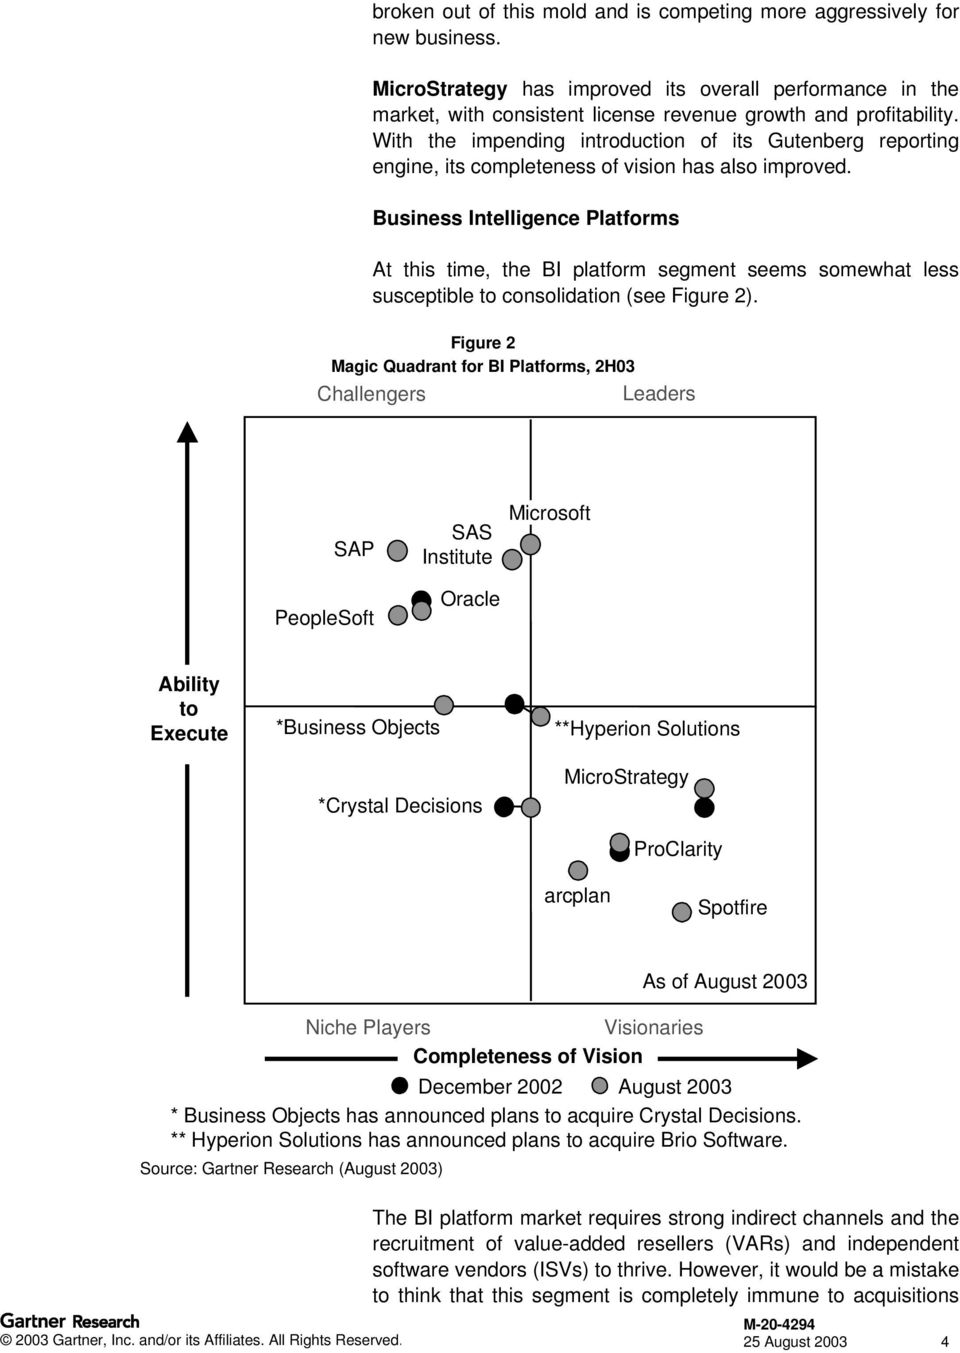 Business Intelligence Platforms At this time, the BI platform segment seems somewhat less susceptible to consolidation (see Figure 2).